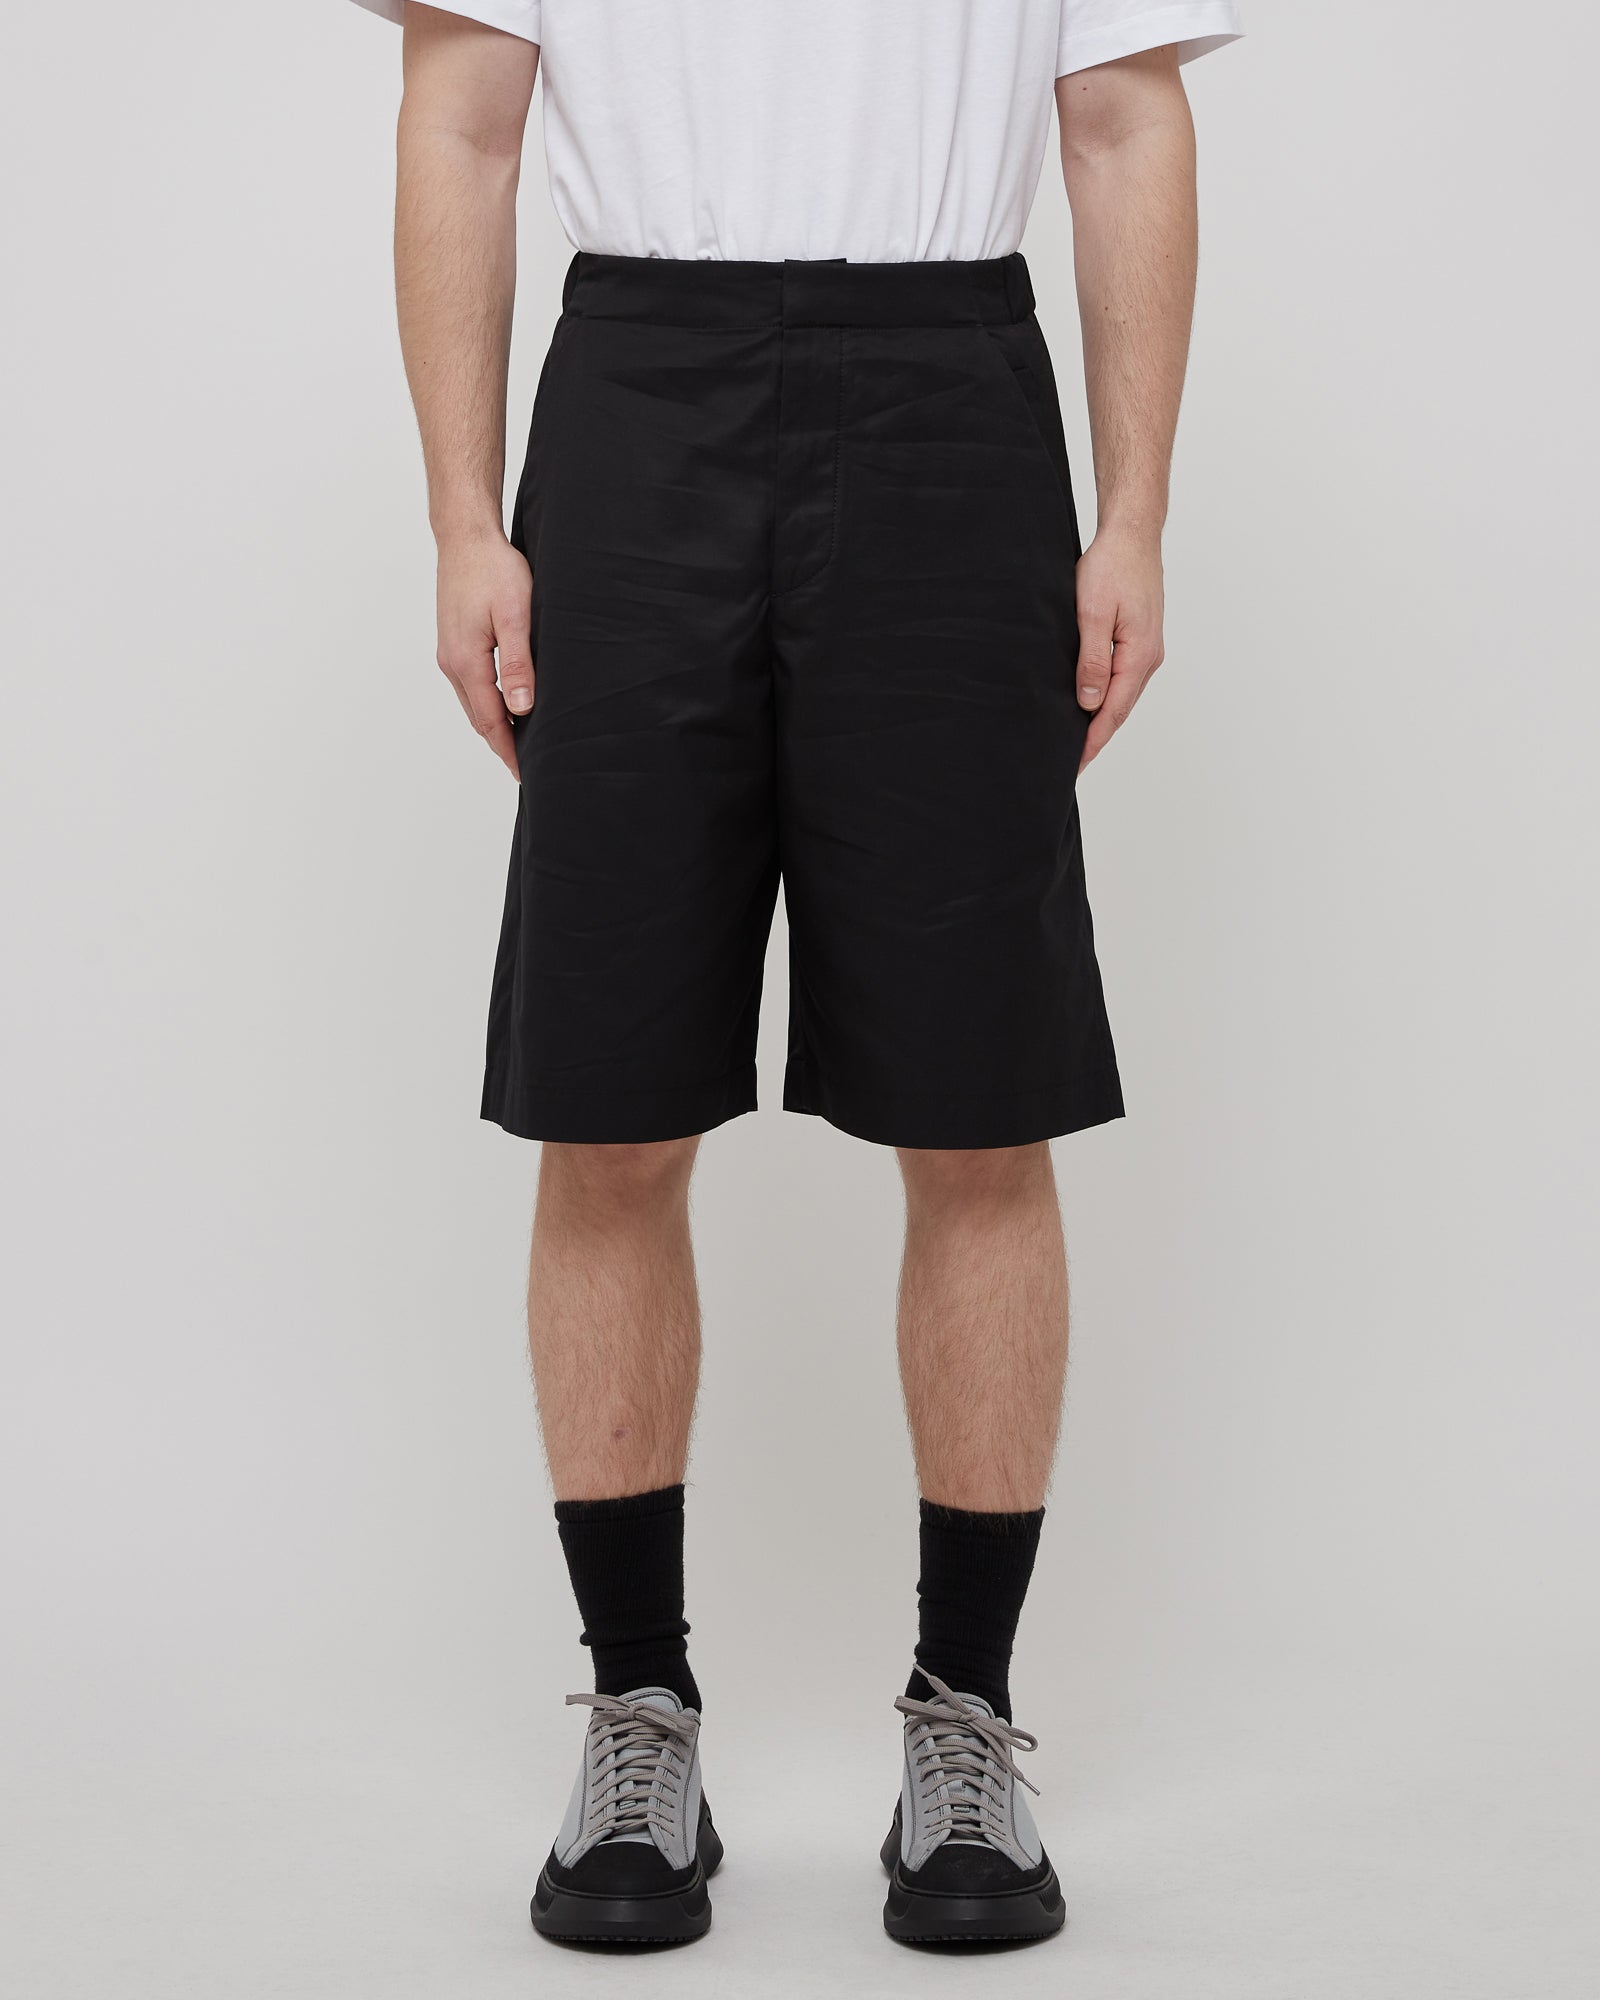 Vapor Short in Black